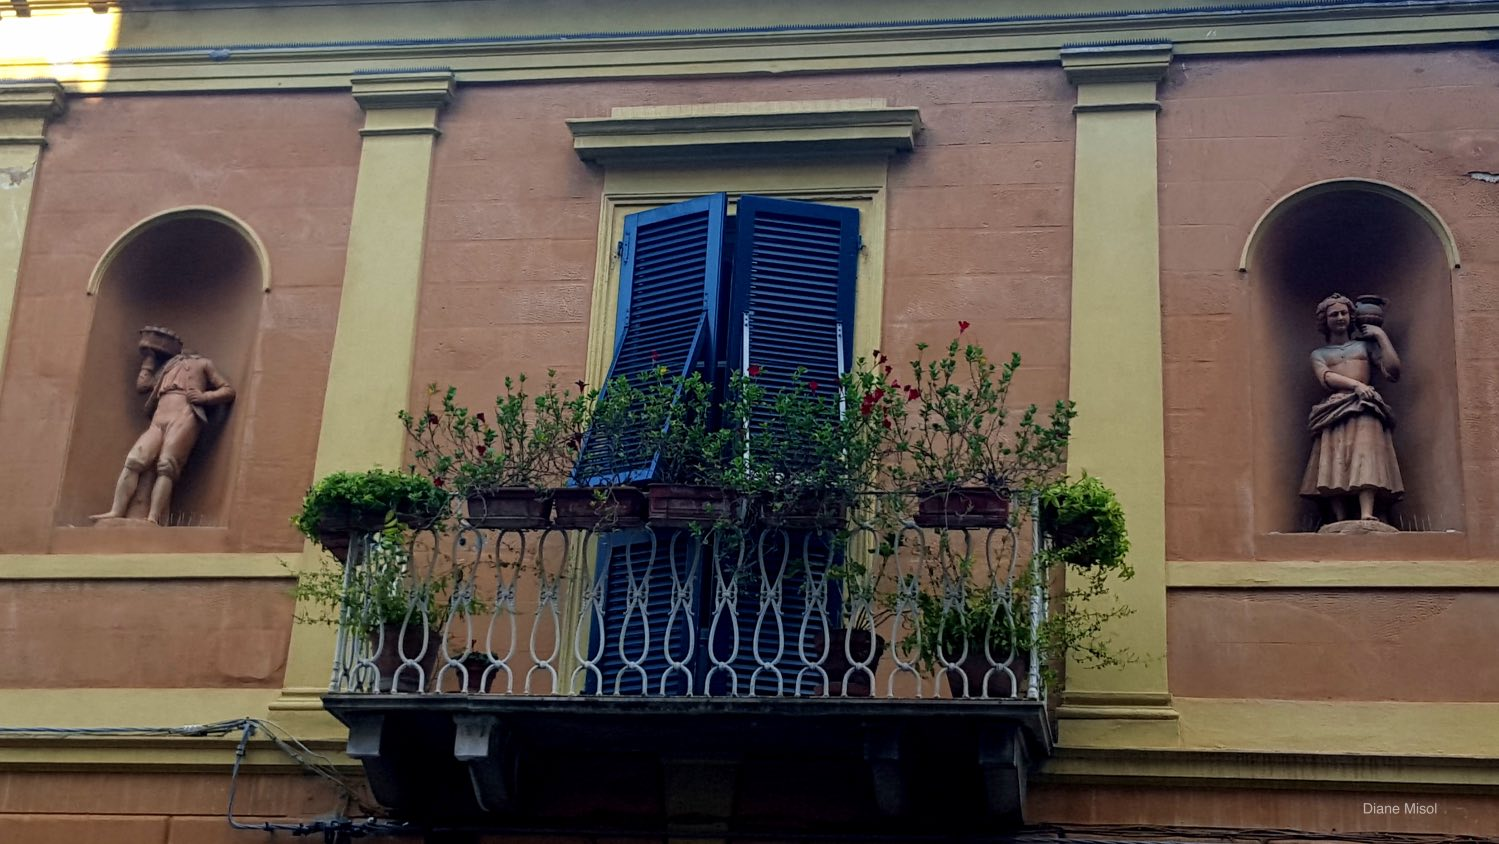 A Balcony with side Statuettes in Pisa, Italy